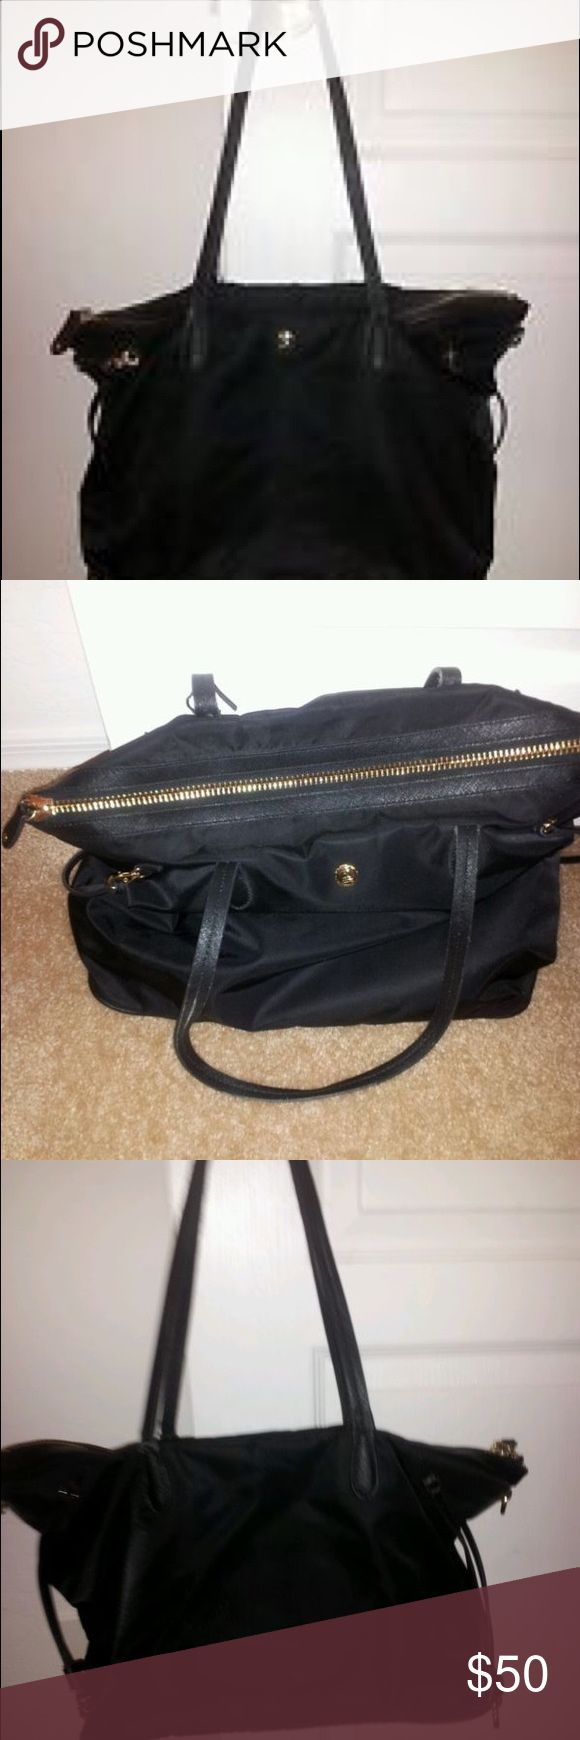 EUC Black JPK Paris Tote Laptop Handbag Nordstrom EUC Black JPK Paris Tote Handbag Nordstrom- Used only a couple of times. Looking to clean out closet. Please message me for any questions or add'l photos! Thanks! JPK Paris Bags Totes